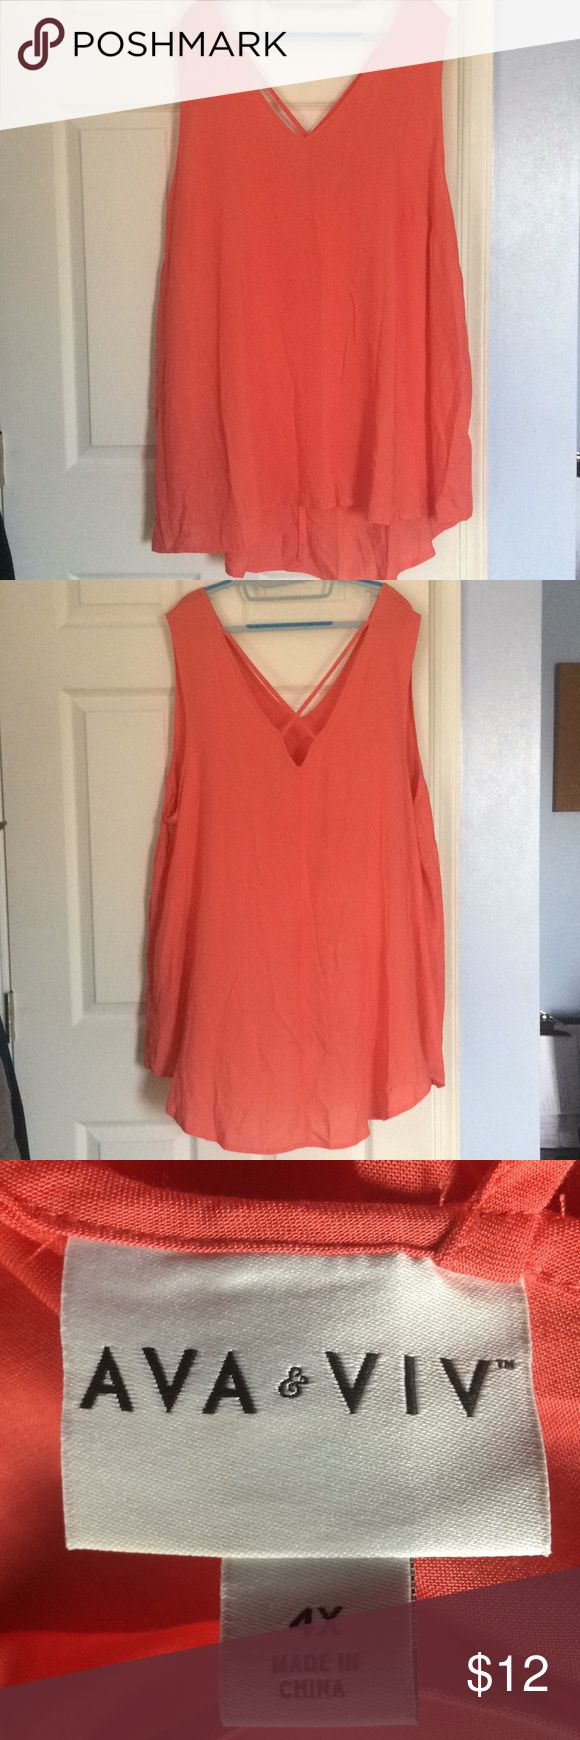 Ava & ViV Orange strappy back Tank Top Barely worn plus sized Ava & Viv orange strappy back tank top in a size 4X. Great piece to be worn as a Layering piece or during those long warm summer days. Fabric makeup is the last pic. Bundles and offers are always welcome. HAPPY POSHING POSHERS Ava & Viv Tops Tank Tops